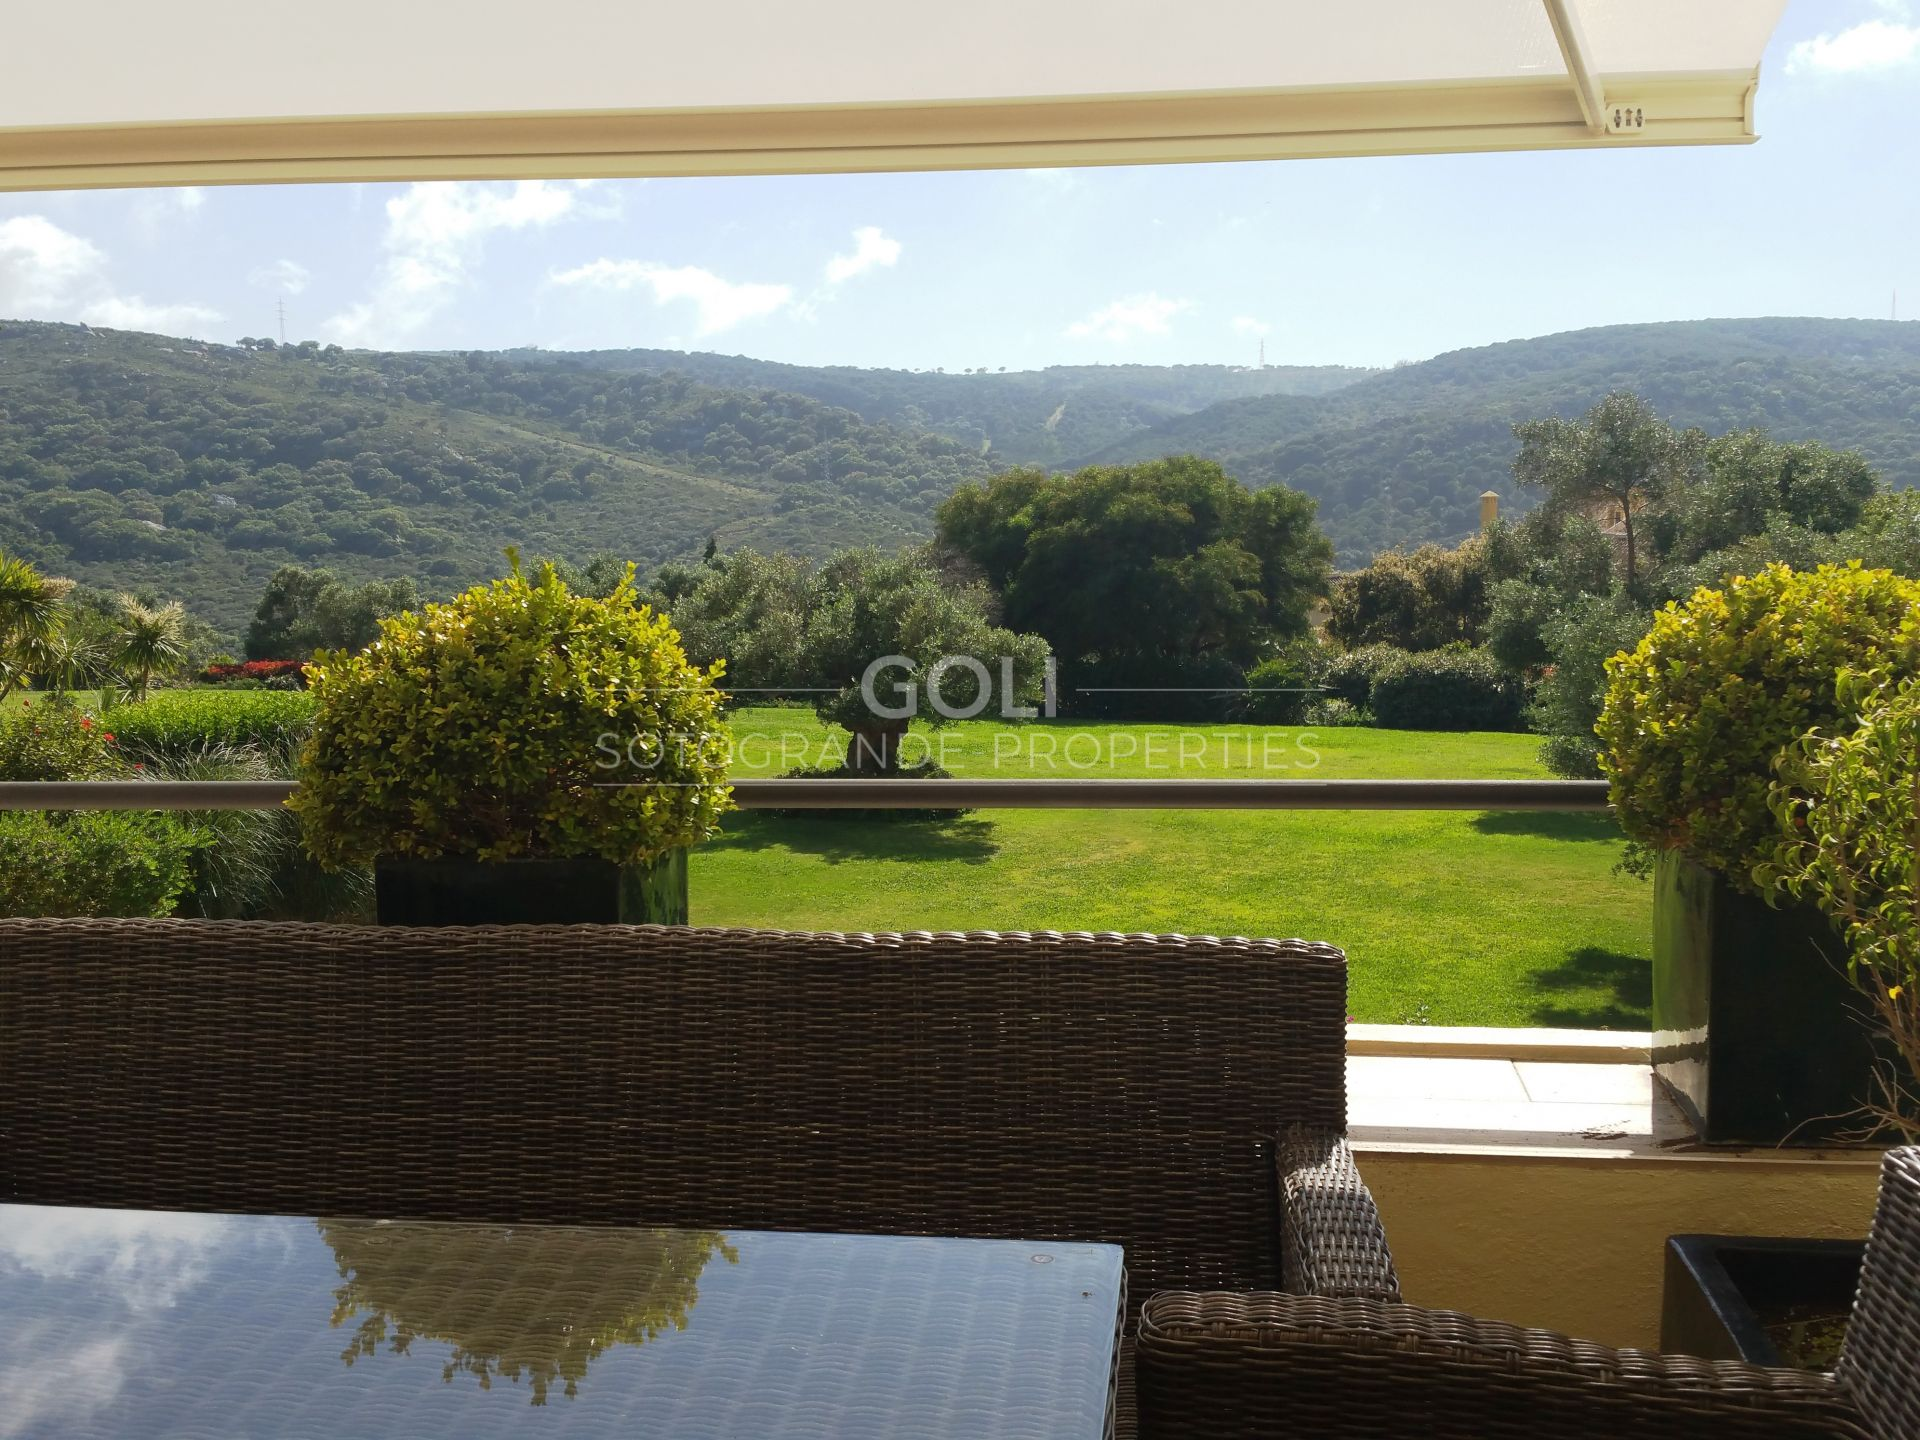 3 bedrooms apartment with spectacular views in San Roque Club